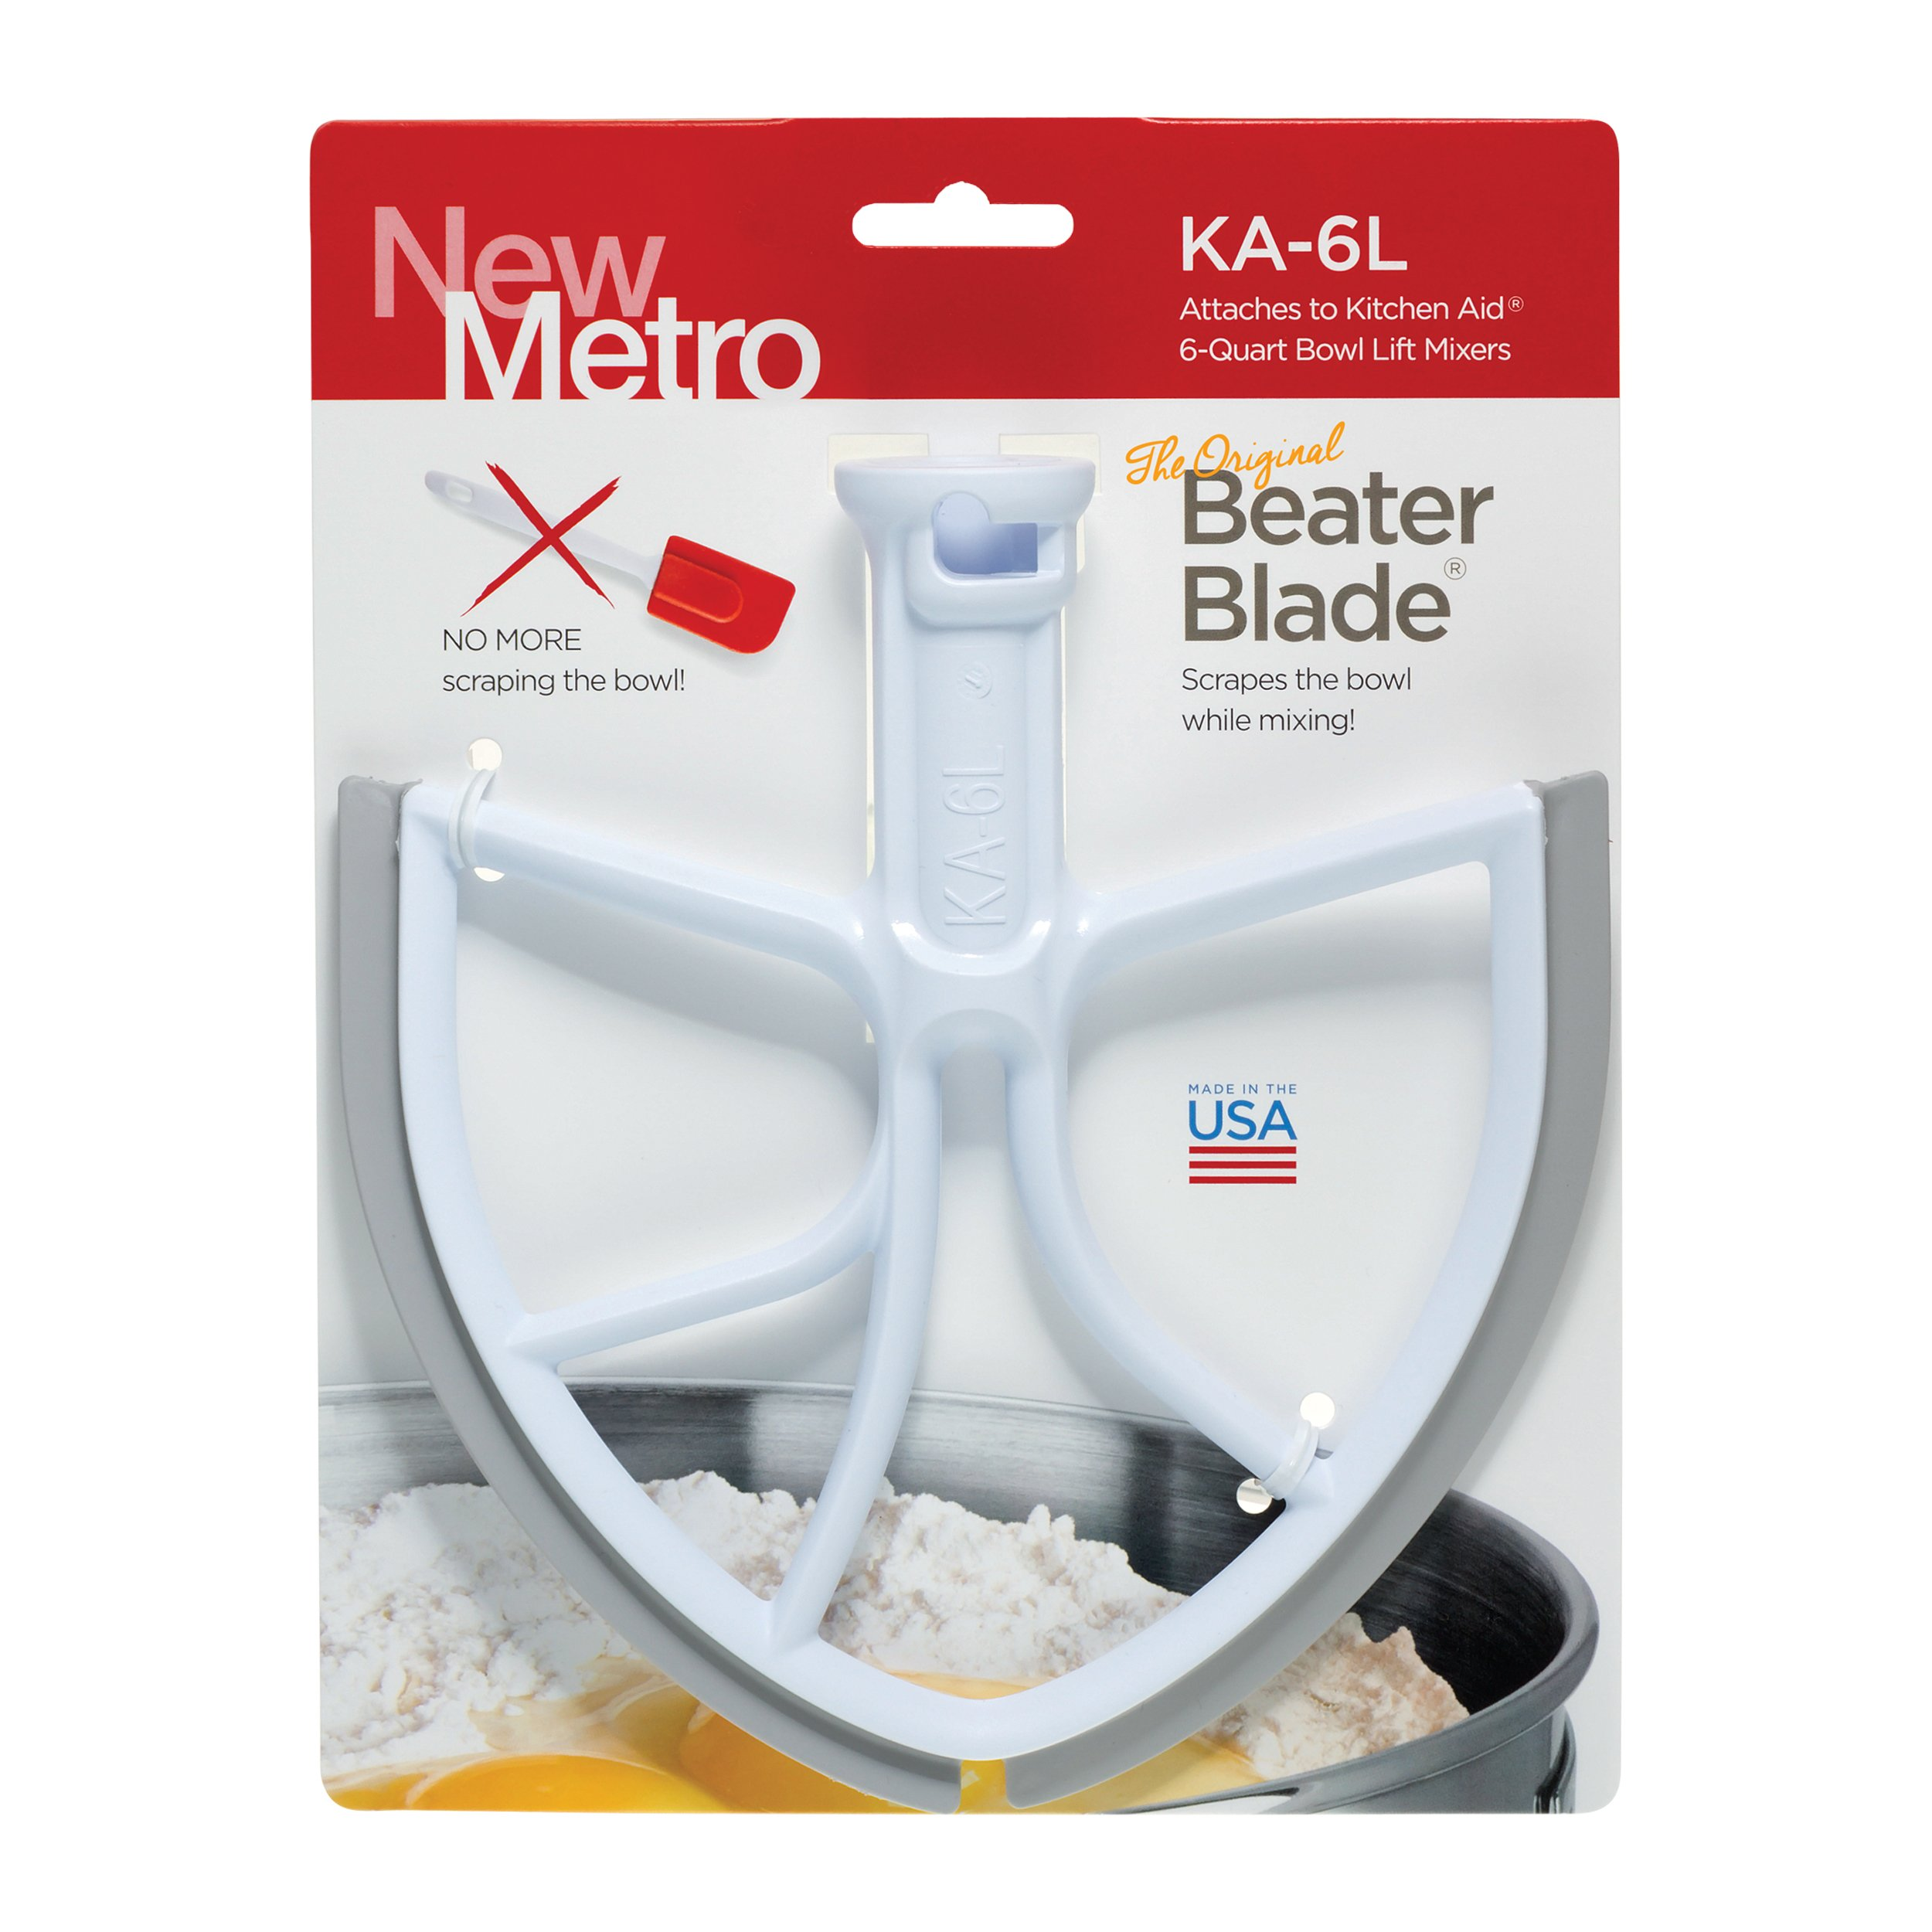 Original BeaterBlade for KitchenAid 6-Quart Bowl Lift Mixer, KA-6L, White, Made in USA by New Metro Design (Image #1)